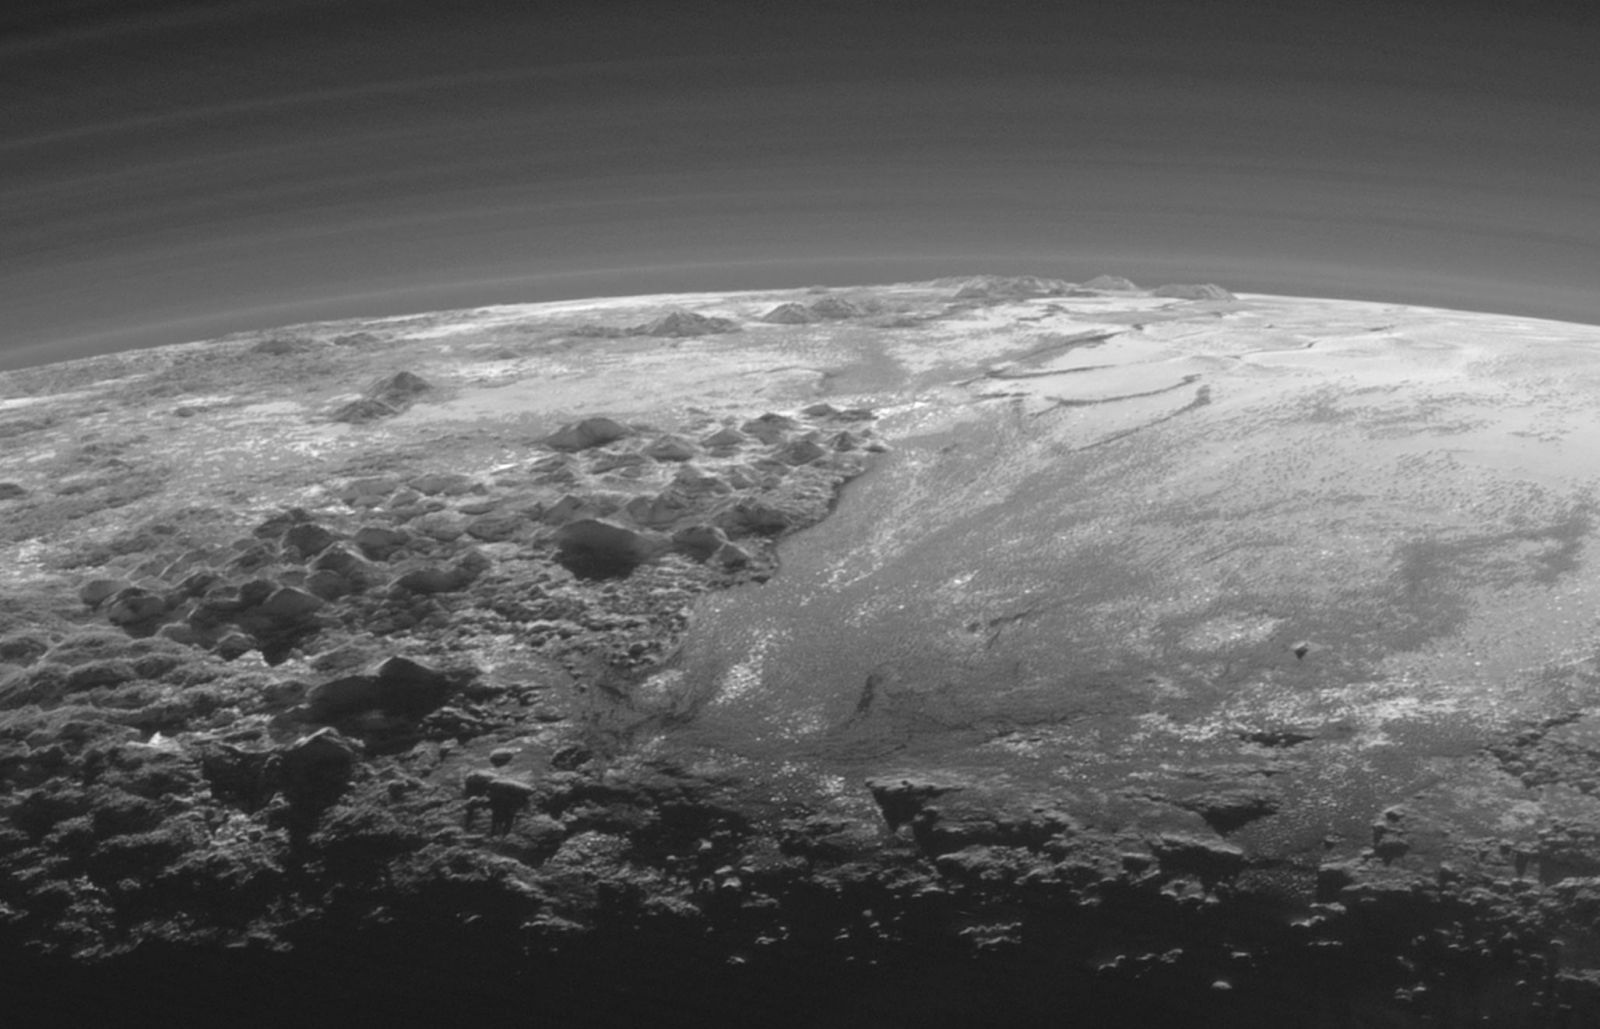 Look back image of Pluto's atmospheric hazes, surface ice mountains, and plains, taken 15 minutes after closet approach. Image Credit: NASA/JHUAPL/SwRI